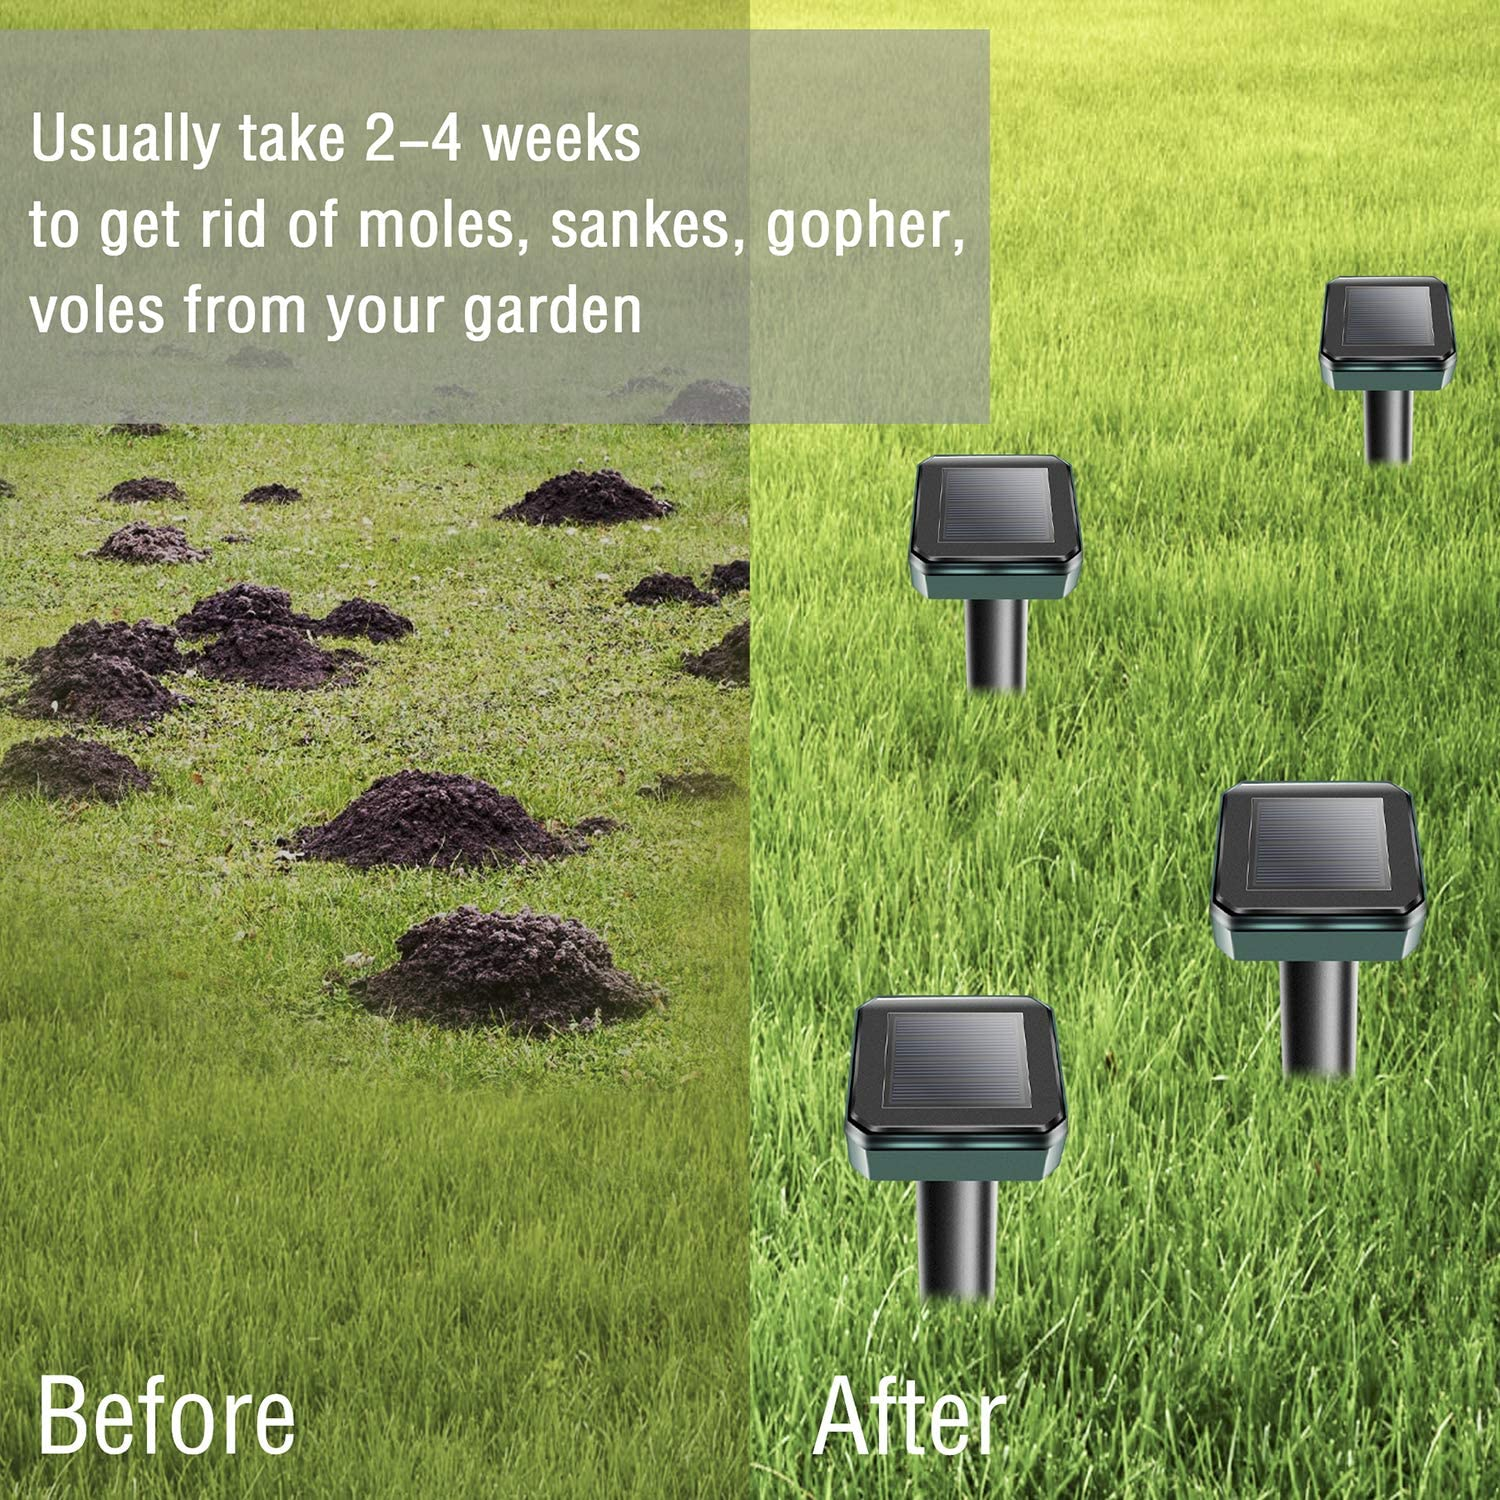 XMSTORE Mole Repellent, Classic 6 Pack Solar Powered and Ultrasonic Gopher/Rodent/Vole Repellent : Garden & Outdoor